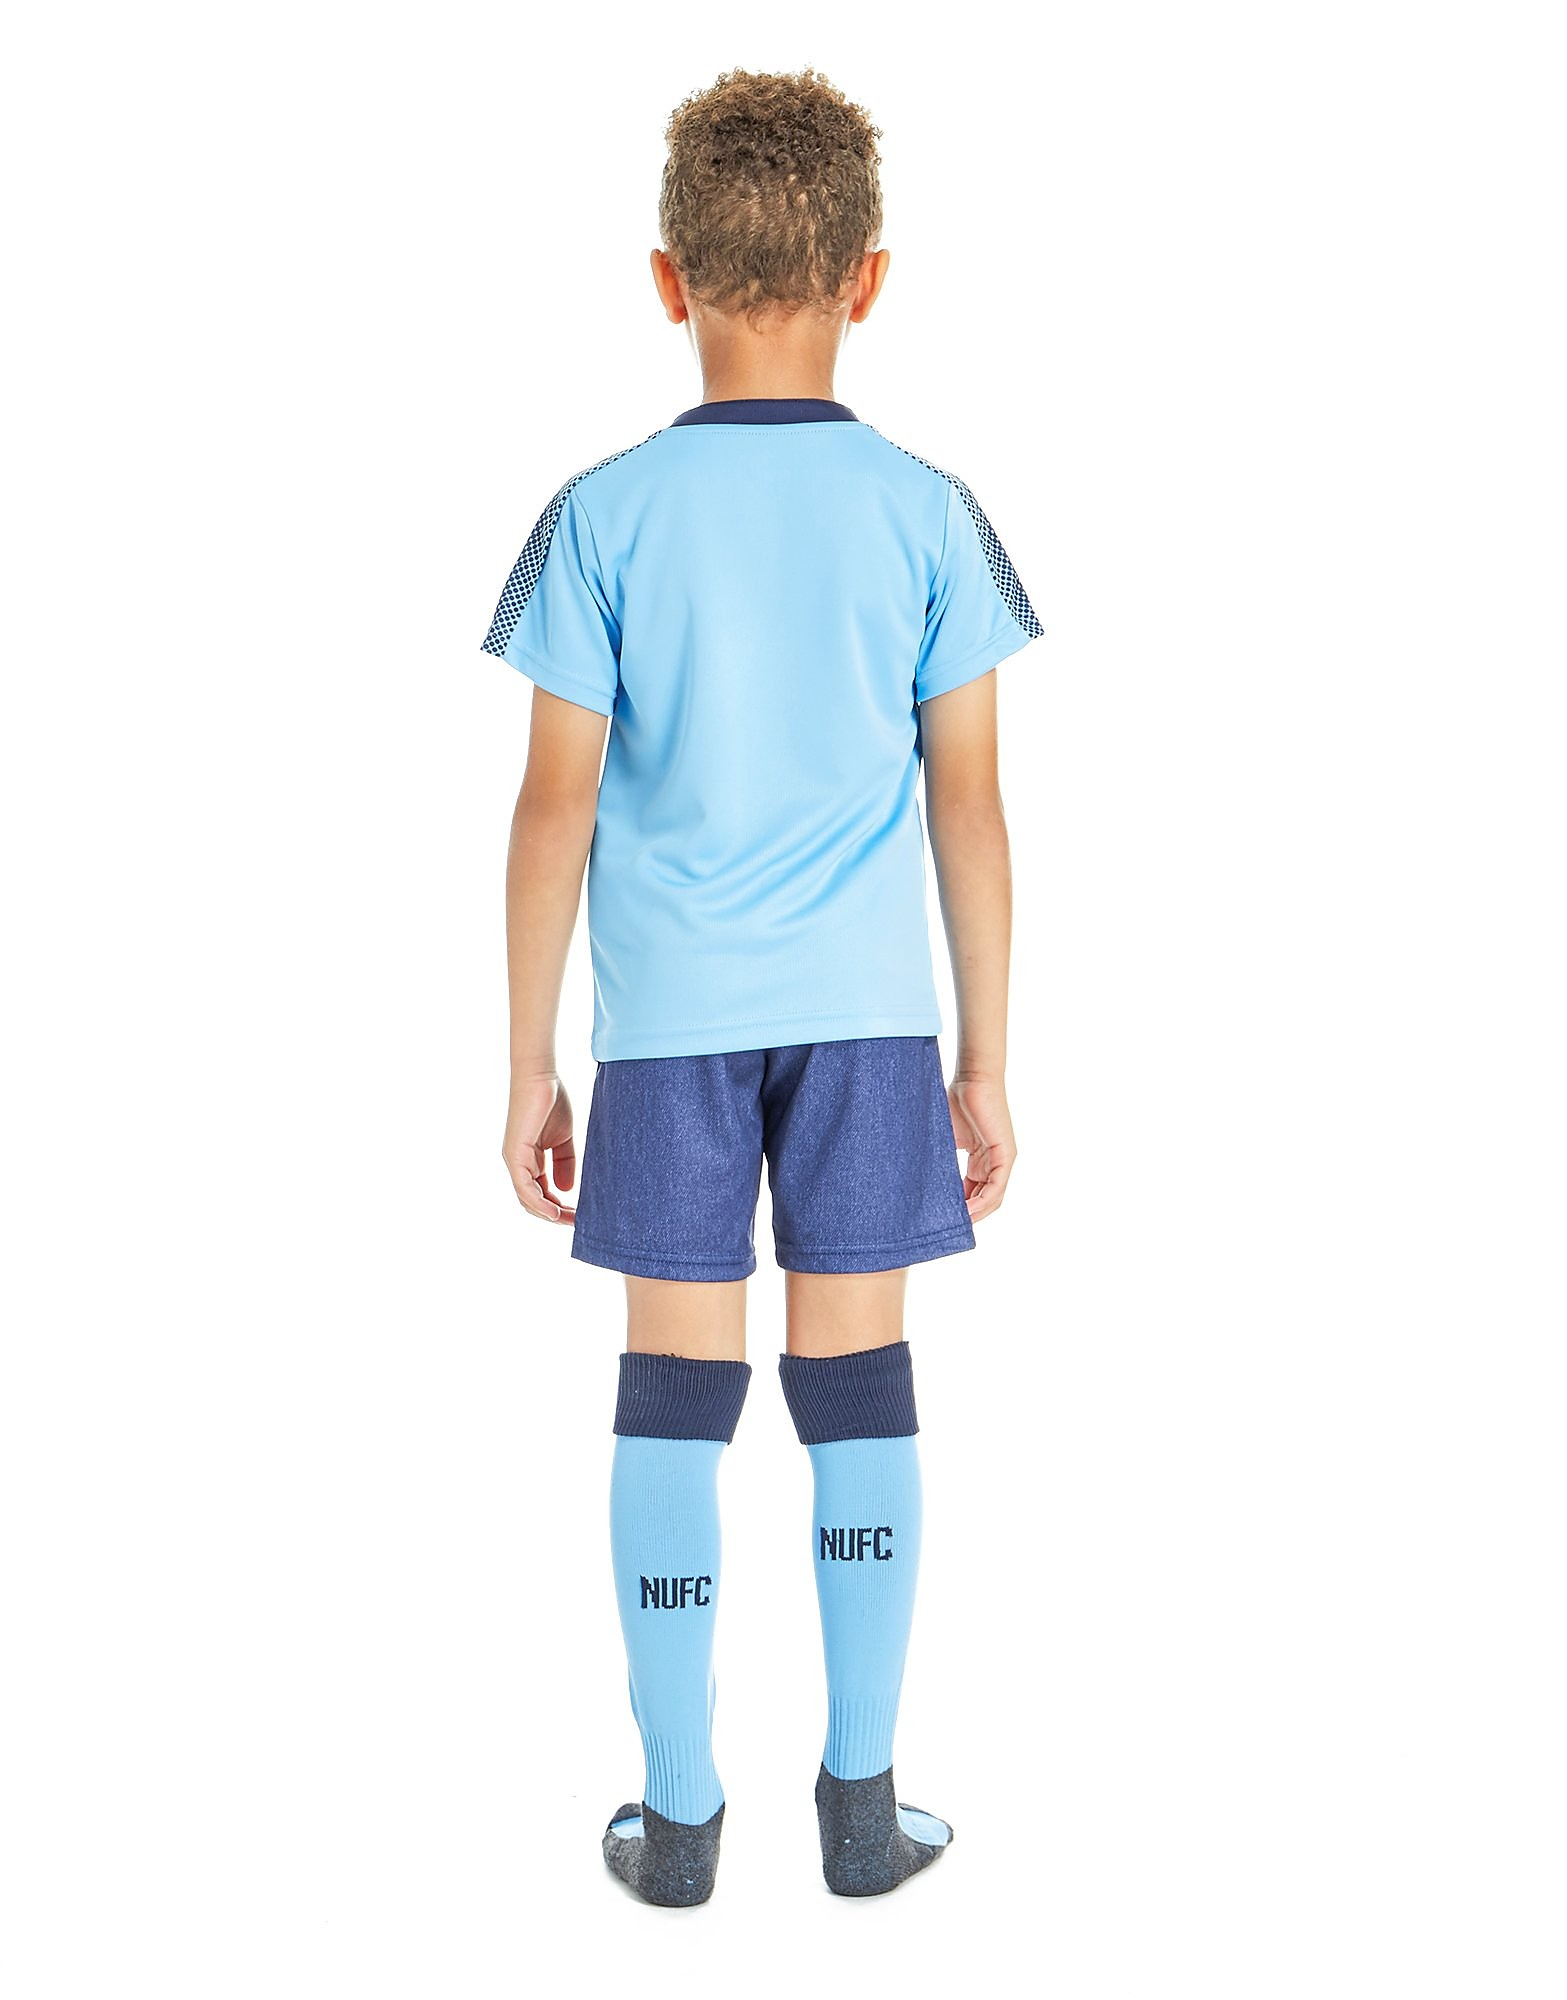 PUMA Newcastle United 2017/18 Away Kit Children